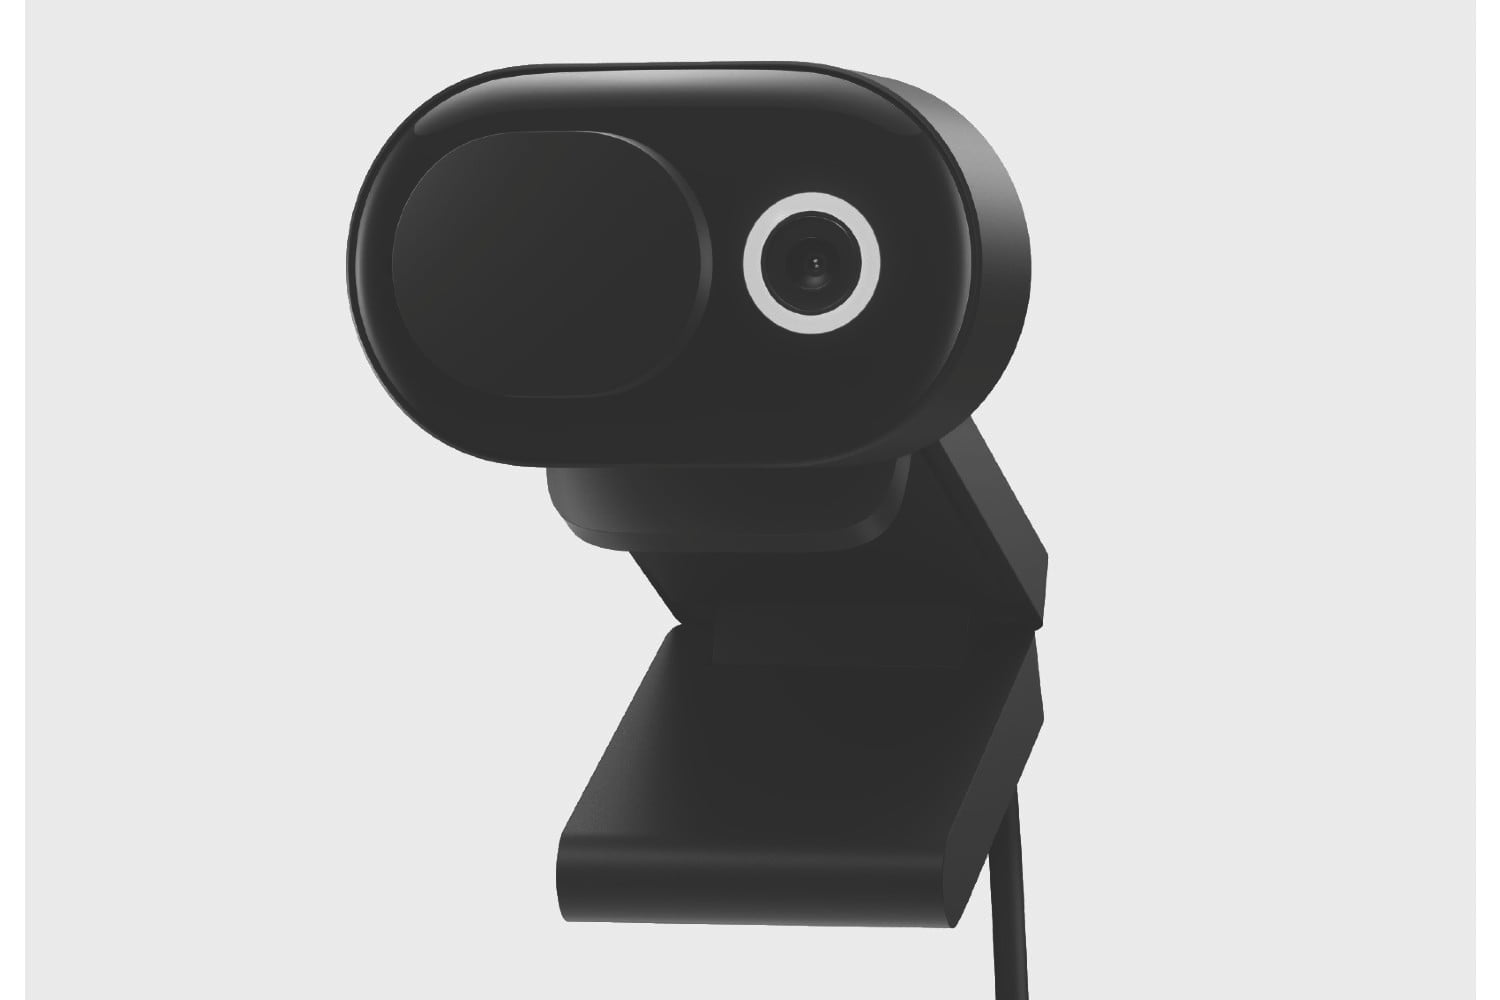 Microsoft's $70 Modern Webcam is designed for the work-from-home crowd